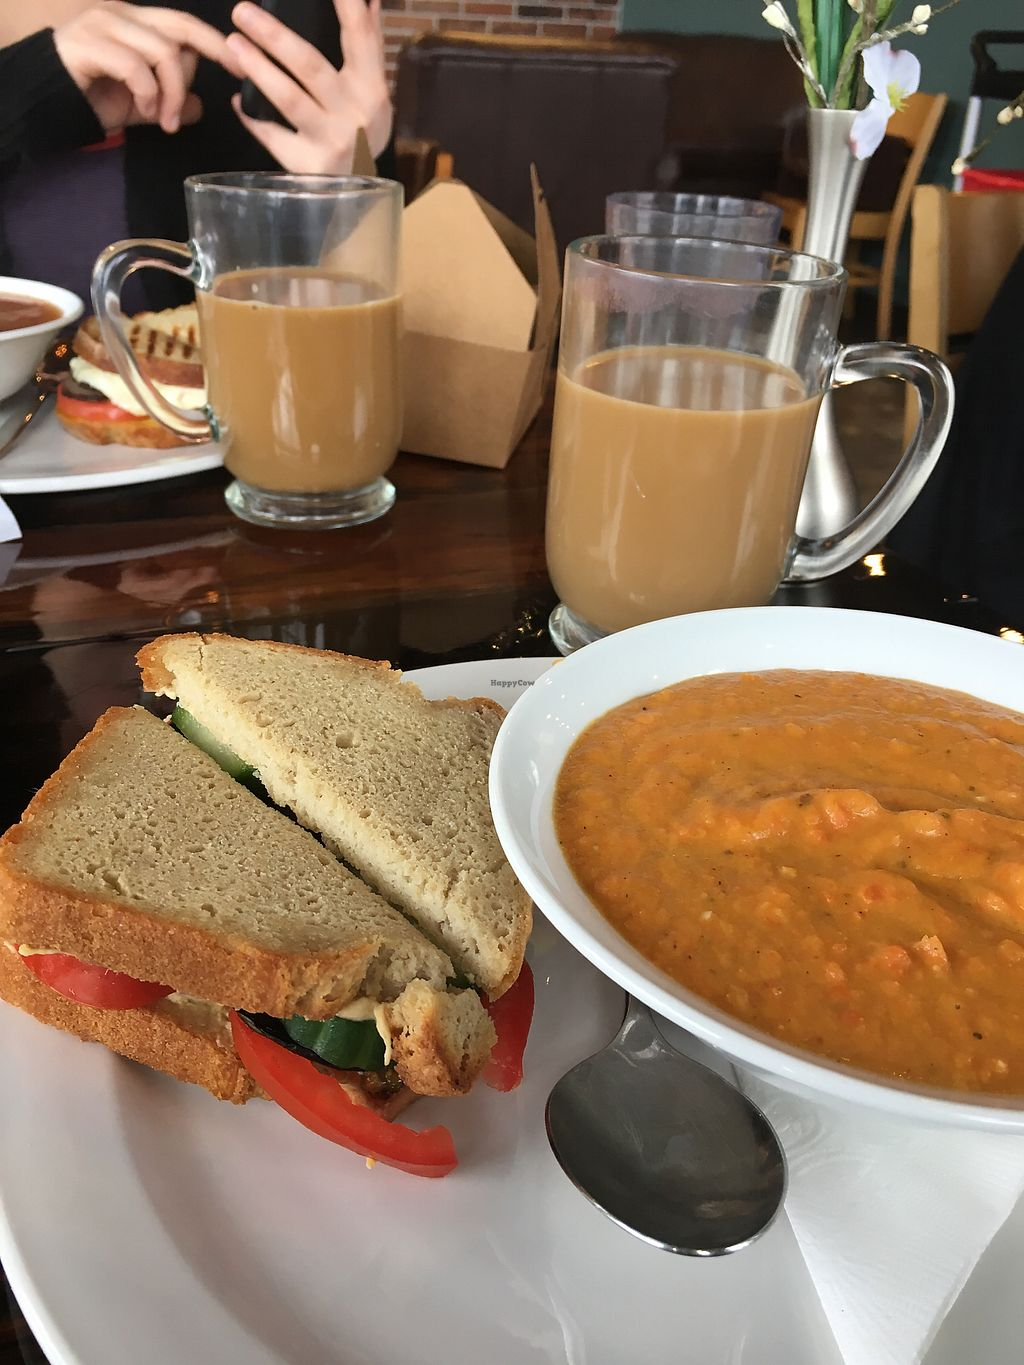 "Photo of SaraBella's Gluten Free Cafe  by <a href=""/members/profile/KellyStCoeur"">KellyStCoeur</a> <br/>Greek sandwich and carrot soup <br/> March 7, 2018  - <a href='/contact/abuse/image/100240/367607'>Report</a>"